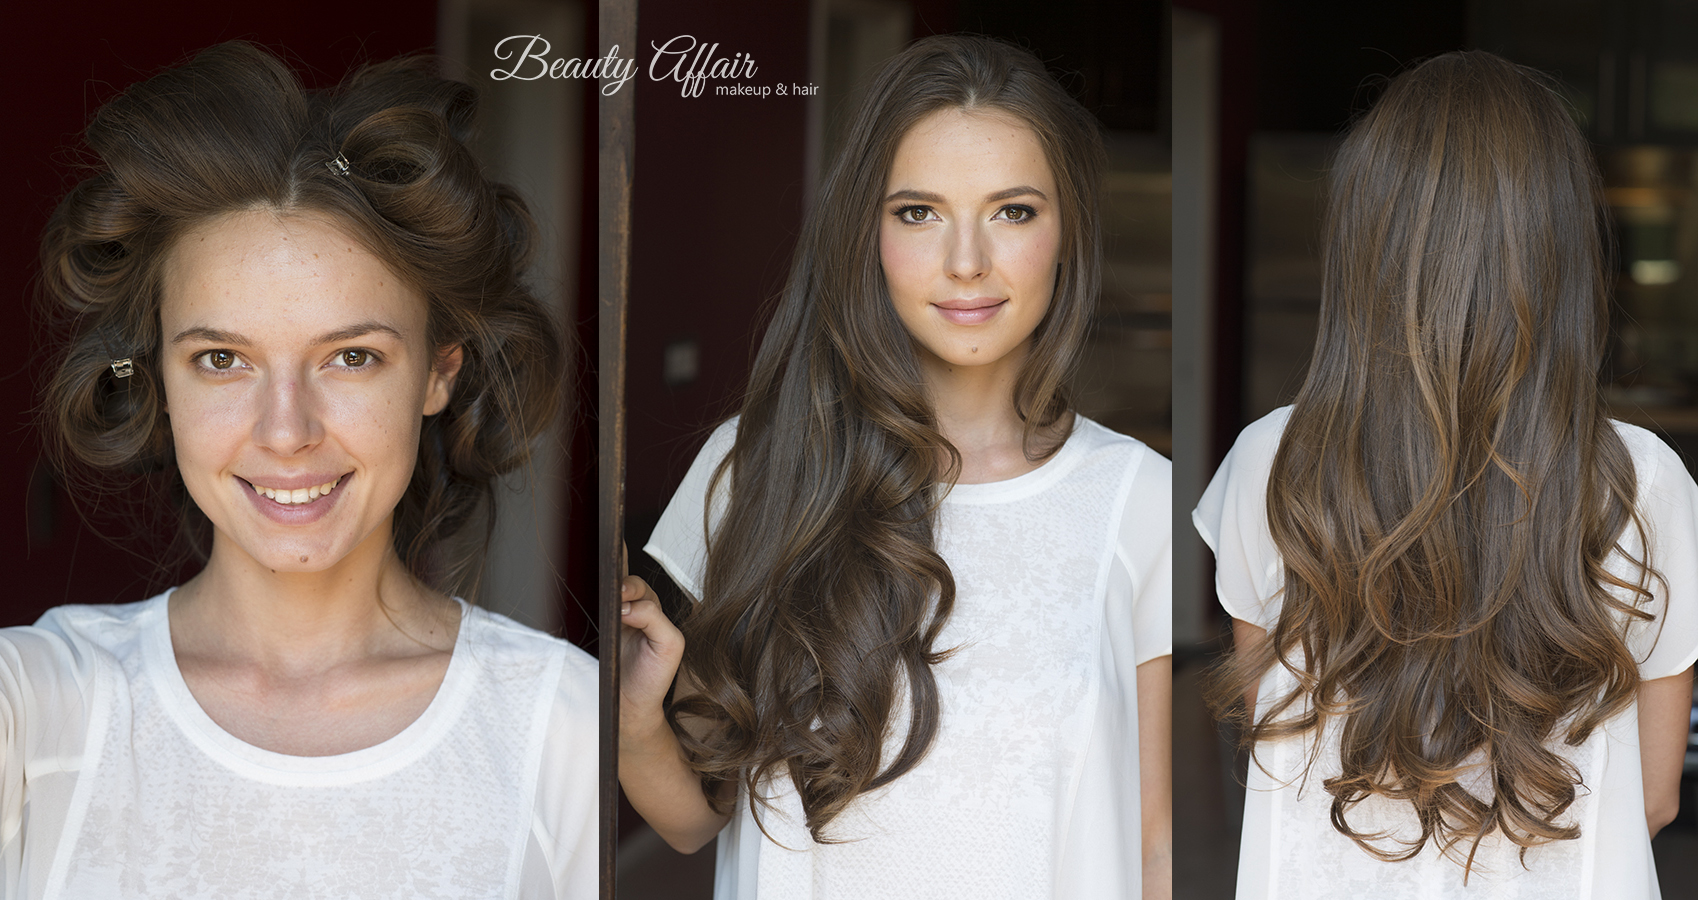 Beauty Affair before and after makeup and hairstyle logo.jpg